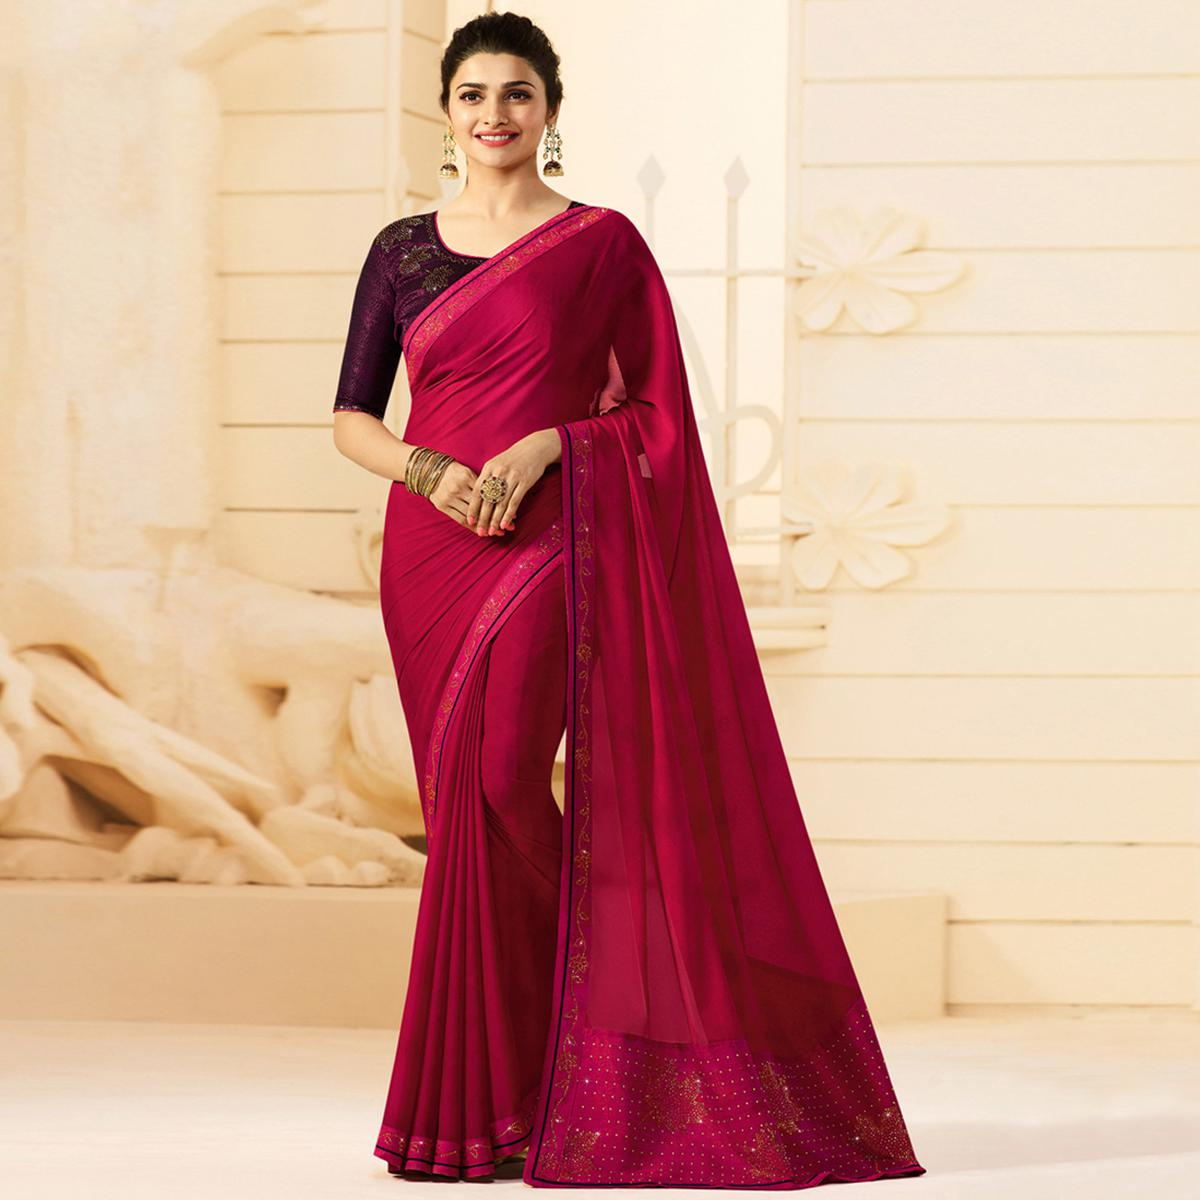 Sensational Fuchsia Pink Colored Partywear Embroidered Silk Saree